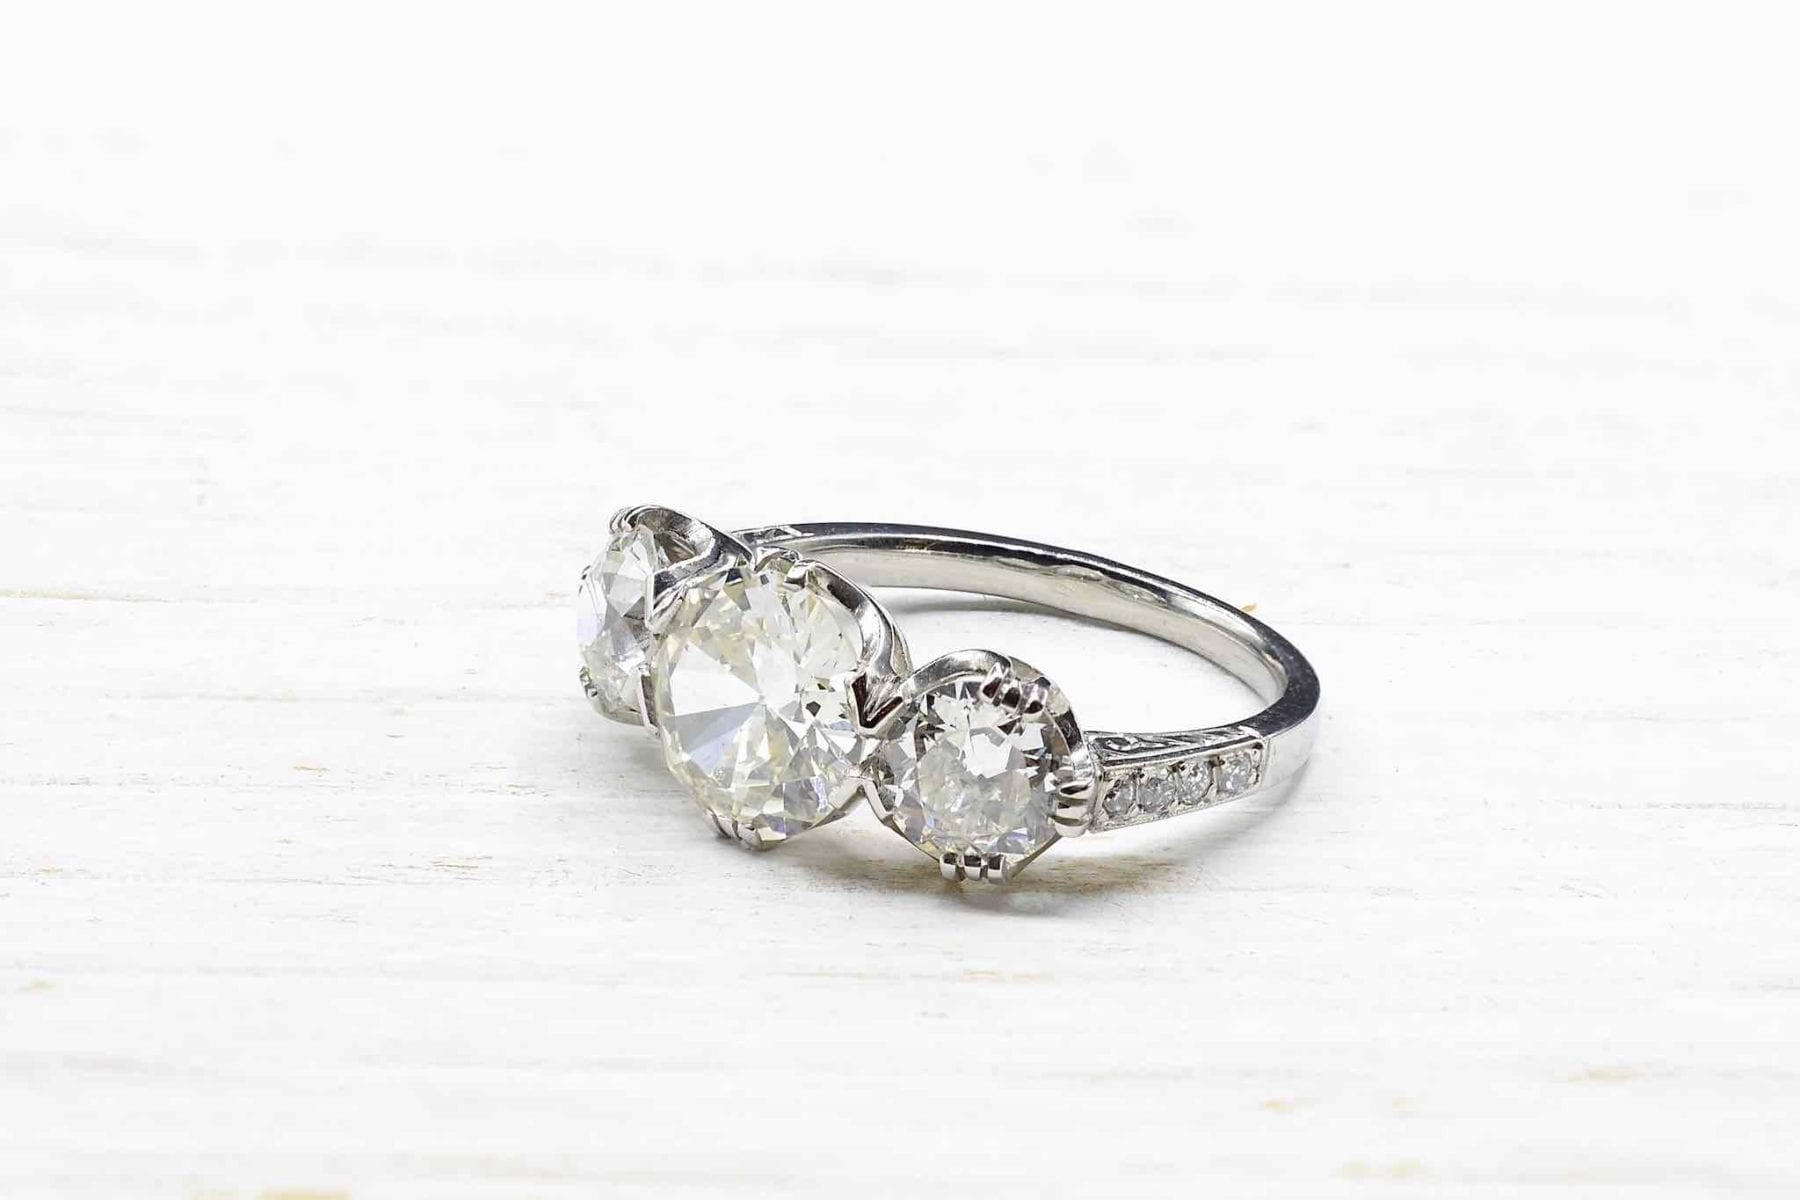 Bague trilogie diamants - 21677